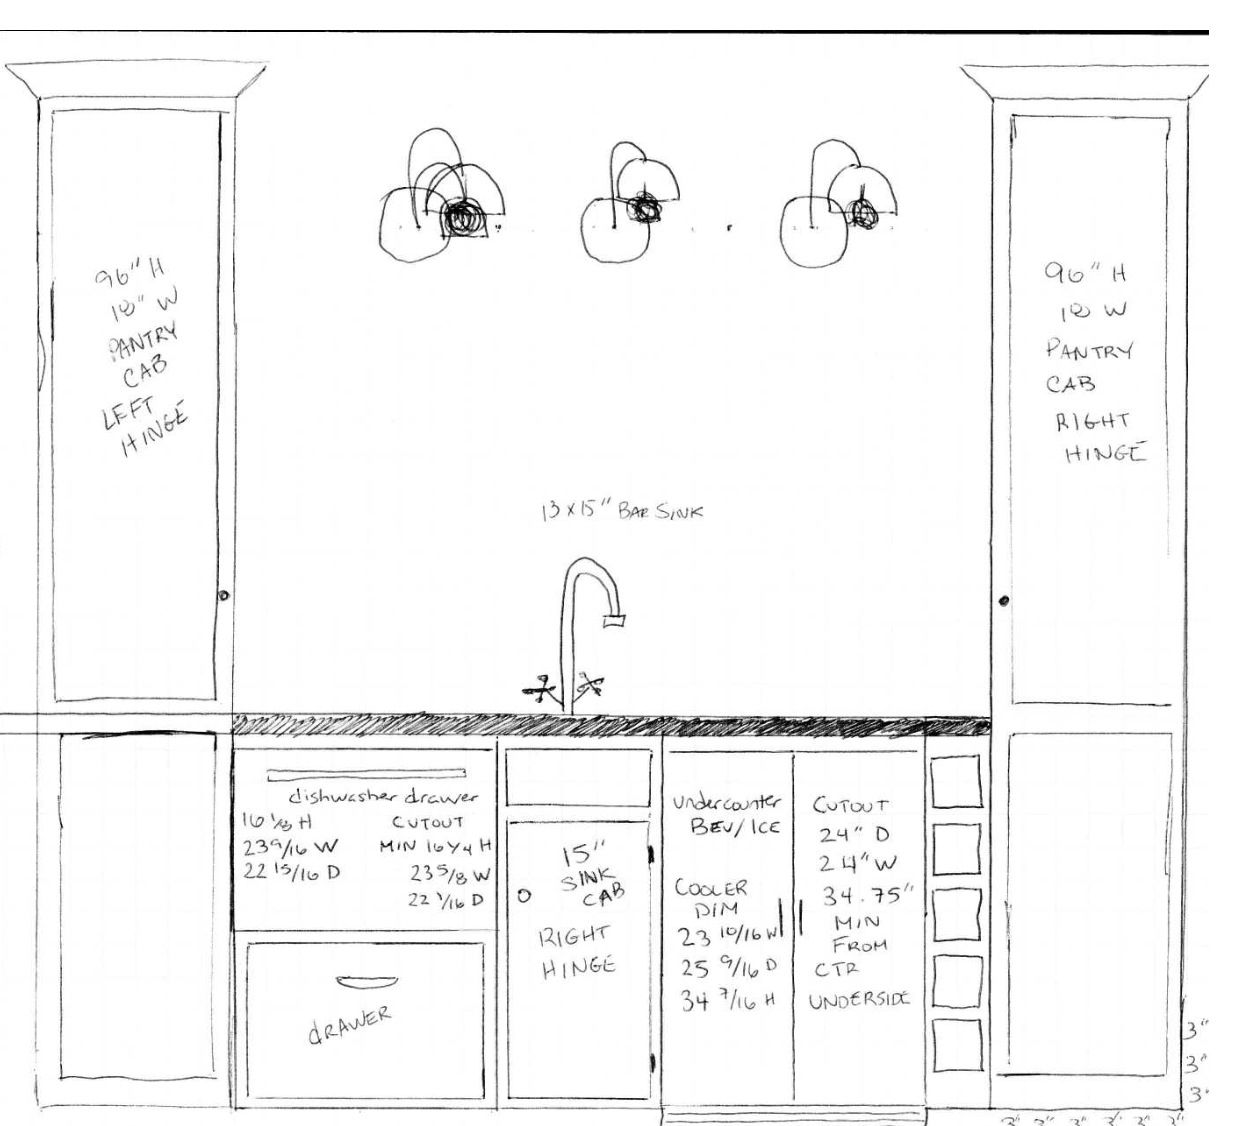 Kitchen Countertops Dimensions Wet Bar Layout My Sad Attempt At An Architectural